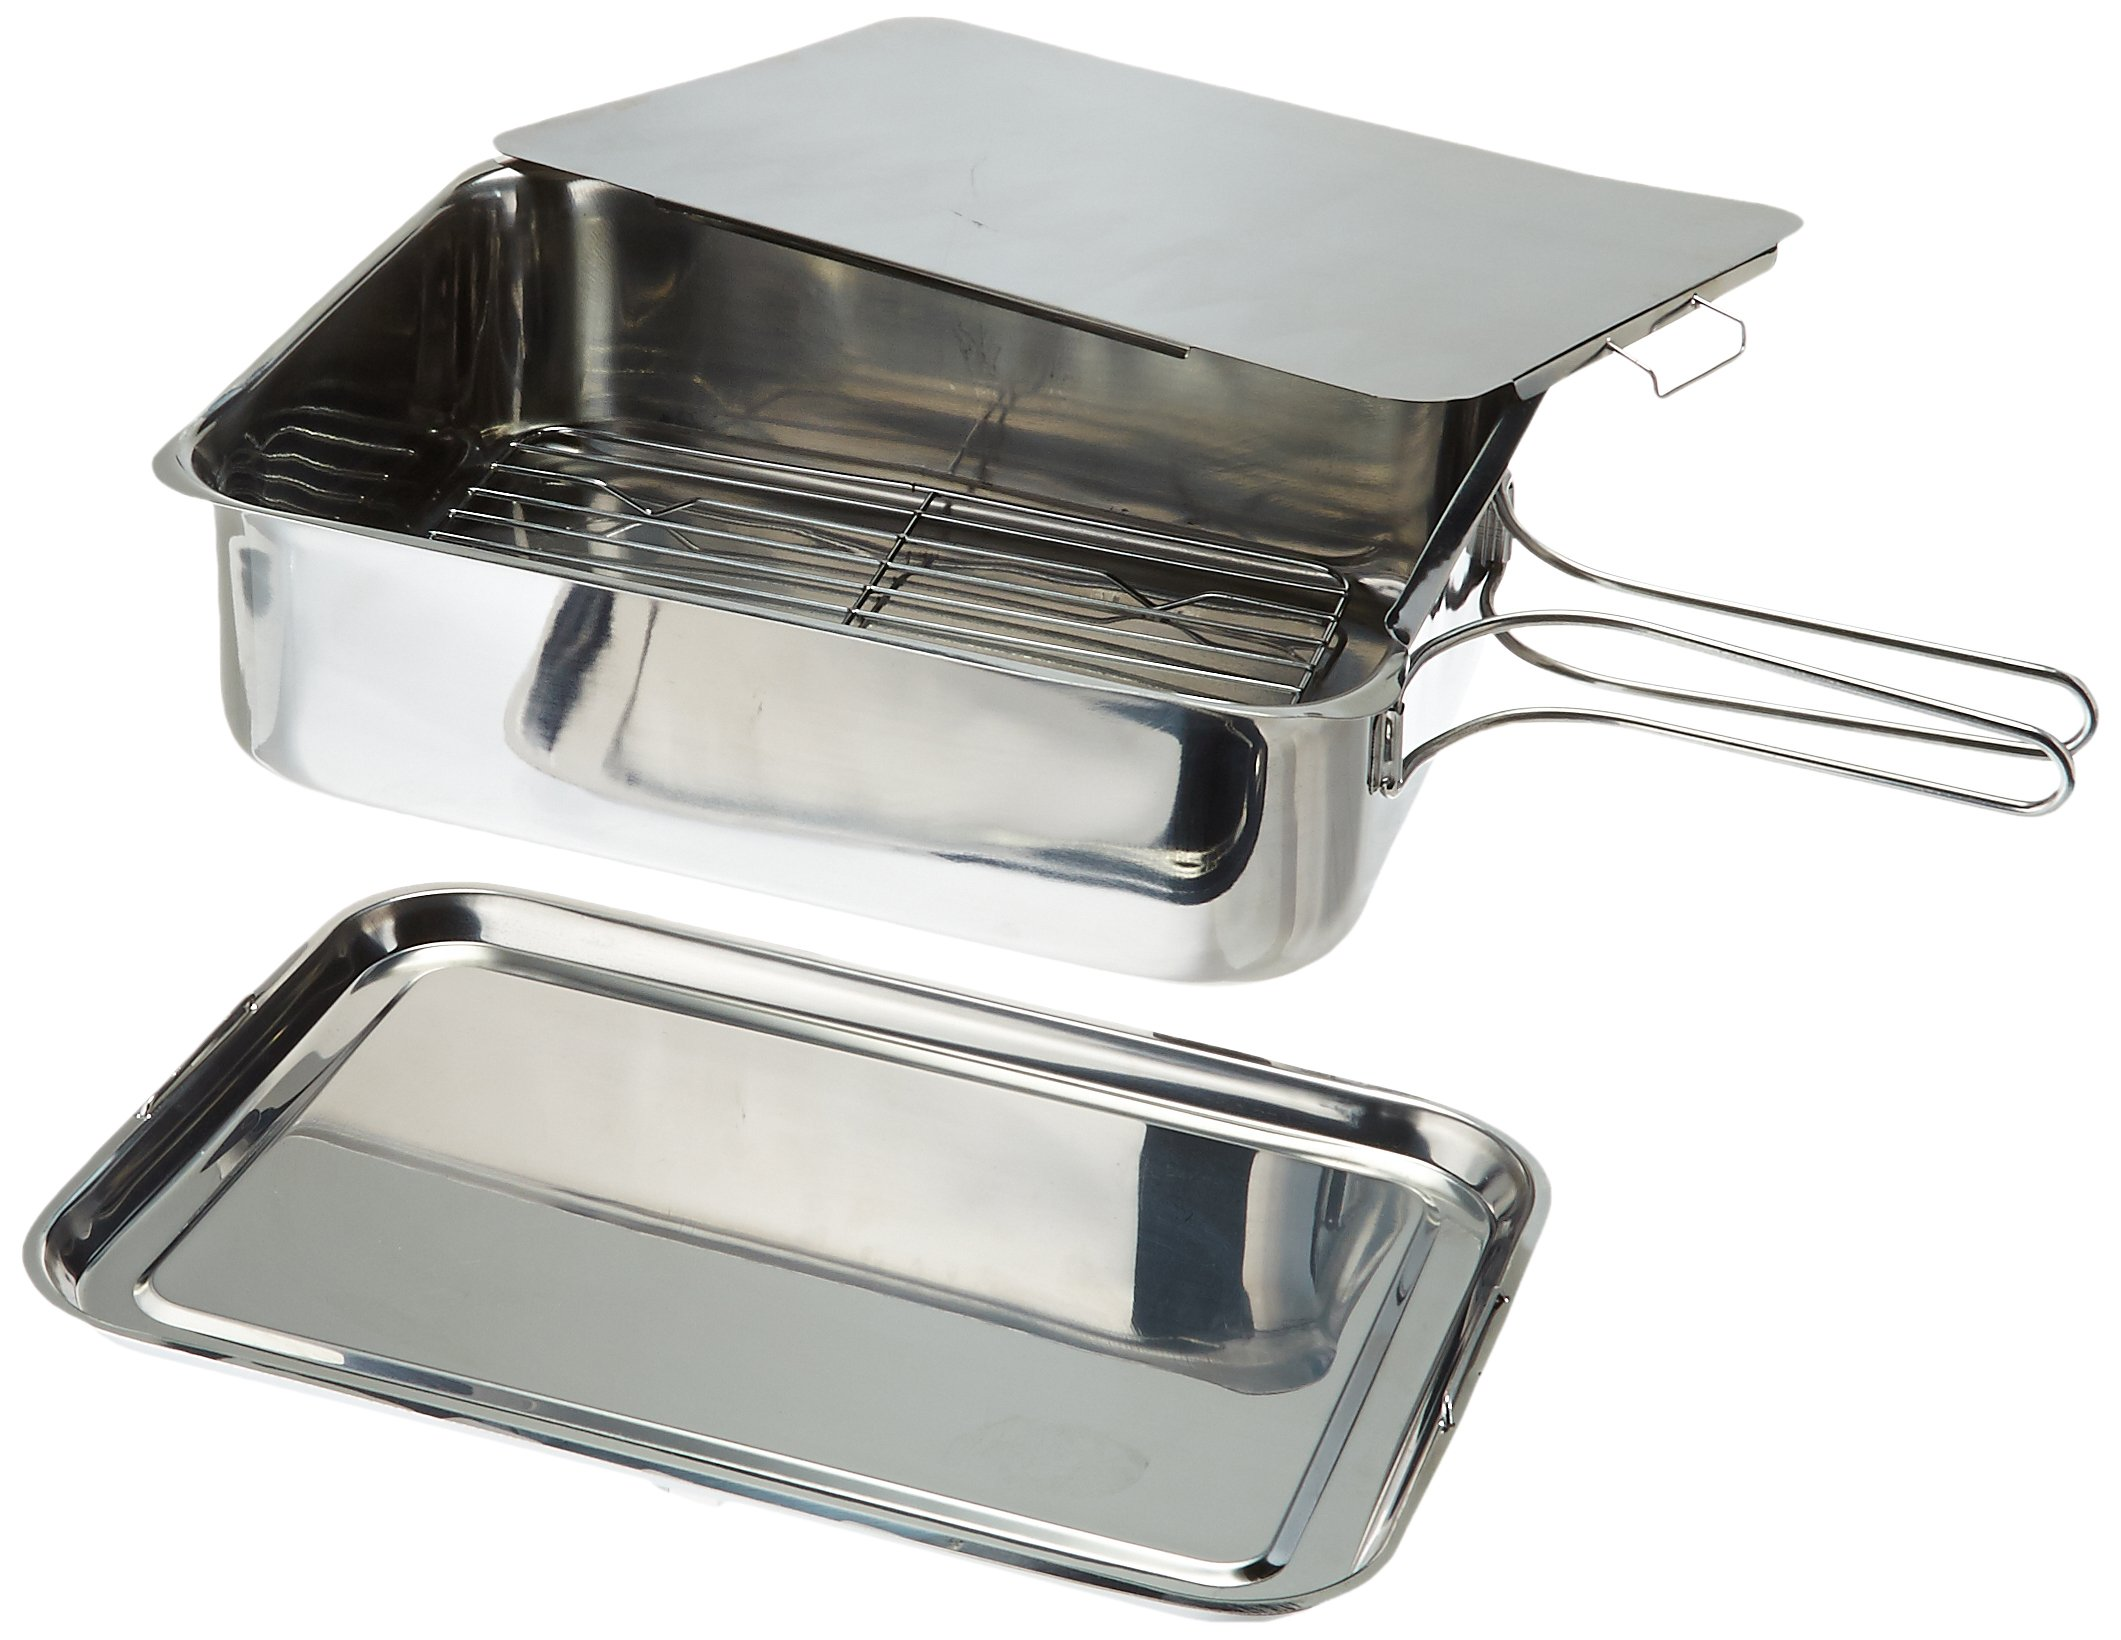 ExcelSteel Stainless Steel Stovetop Smoker, 14 1/2'' X 10 1/2'' X 4'', Silver by ExcelSteel